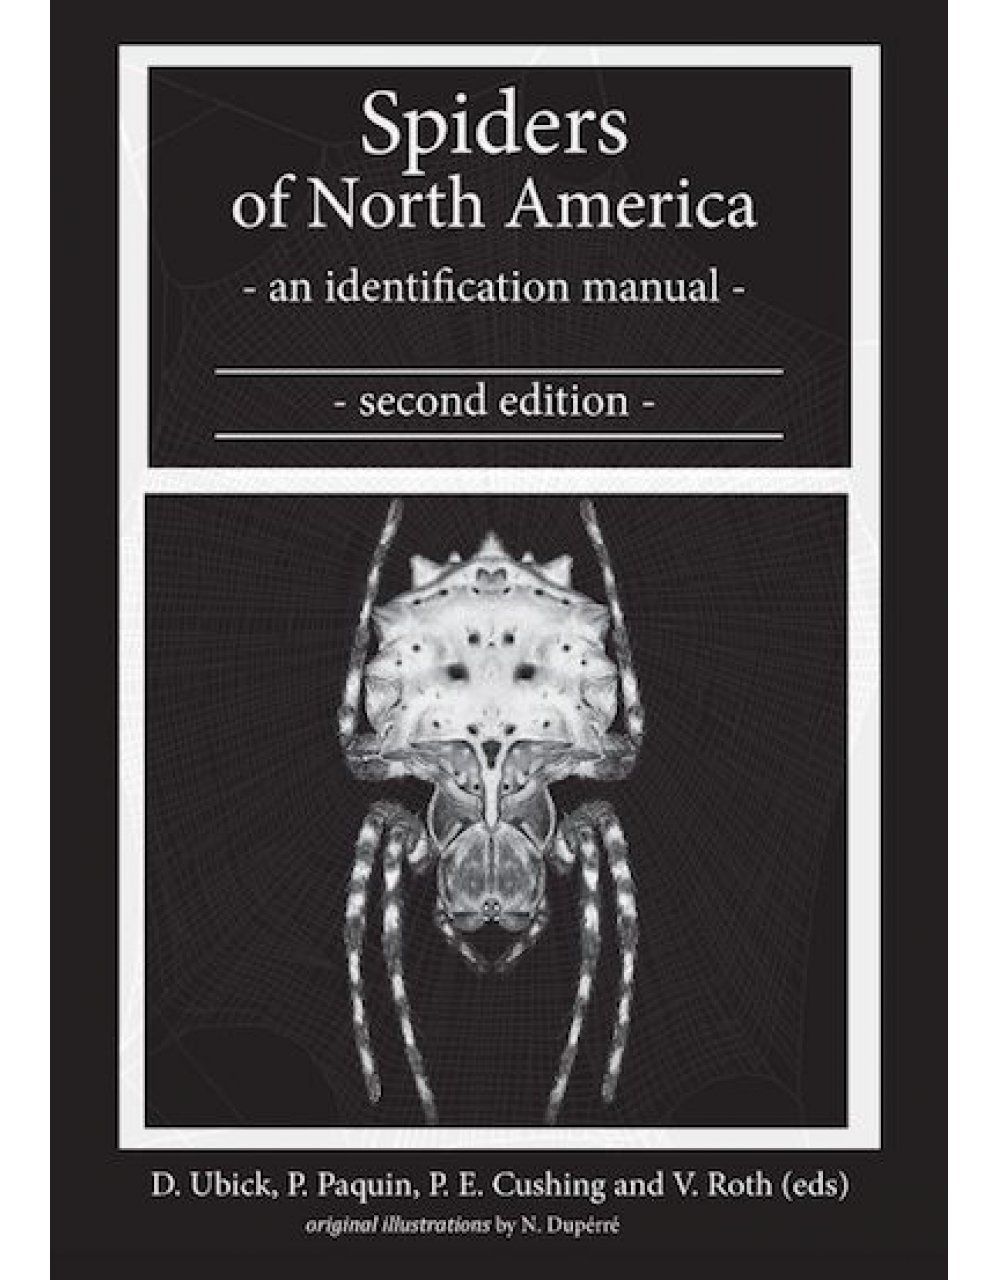 Spider Field Guides & Indentification Books